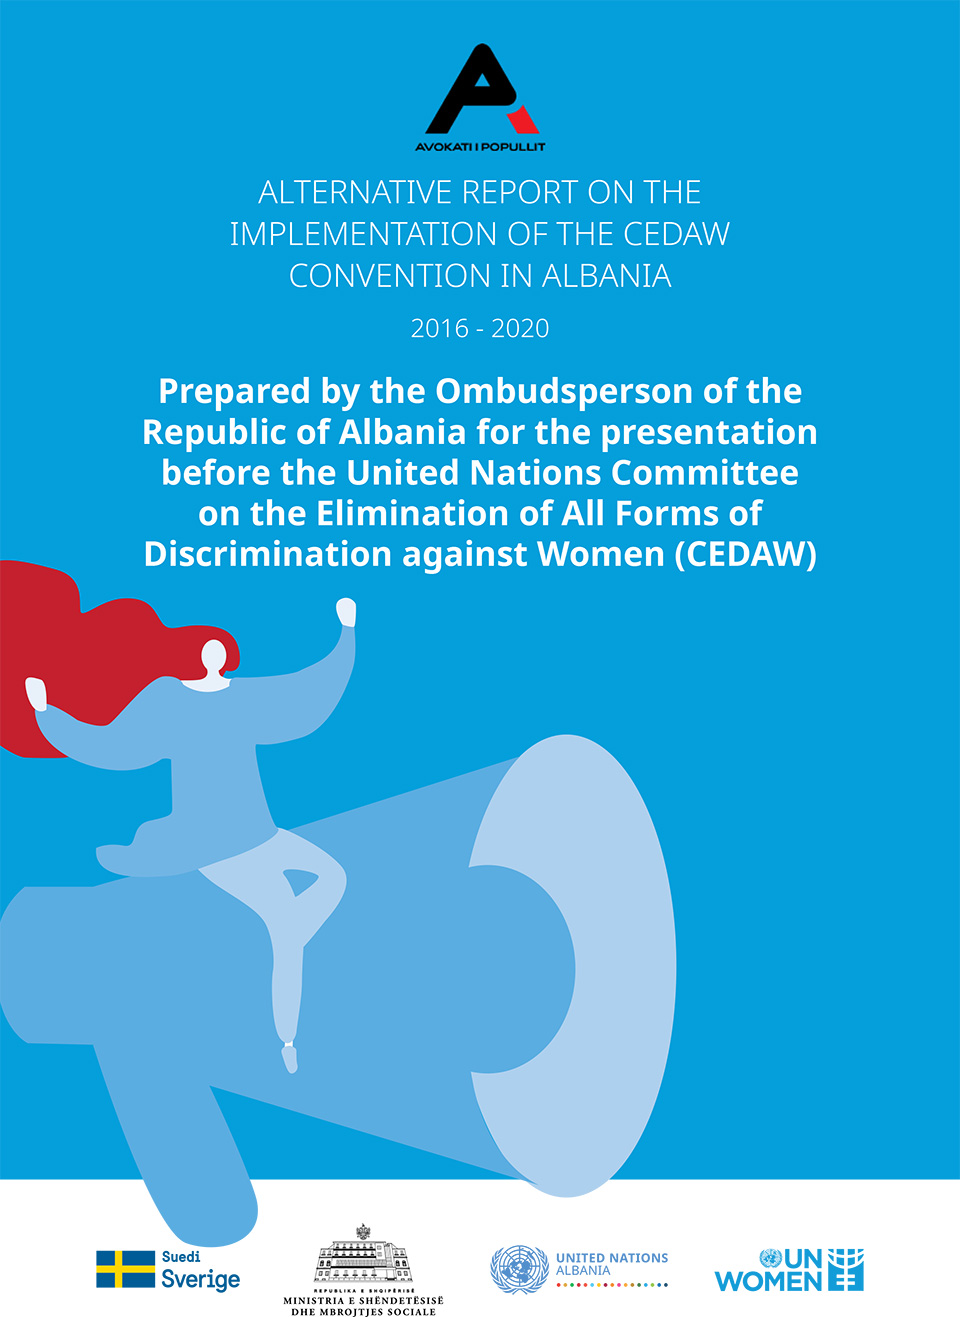 Alternative report on the implementation of the CEDAW convention in Albania 2016 – 2020